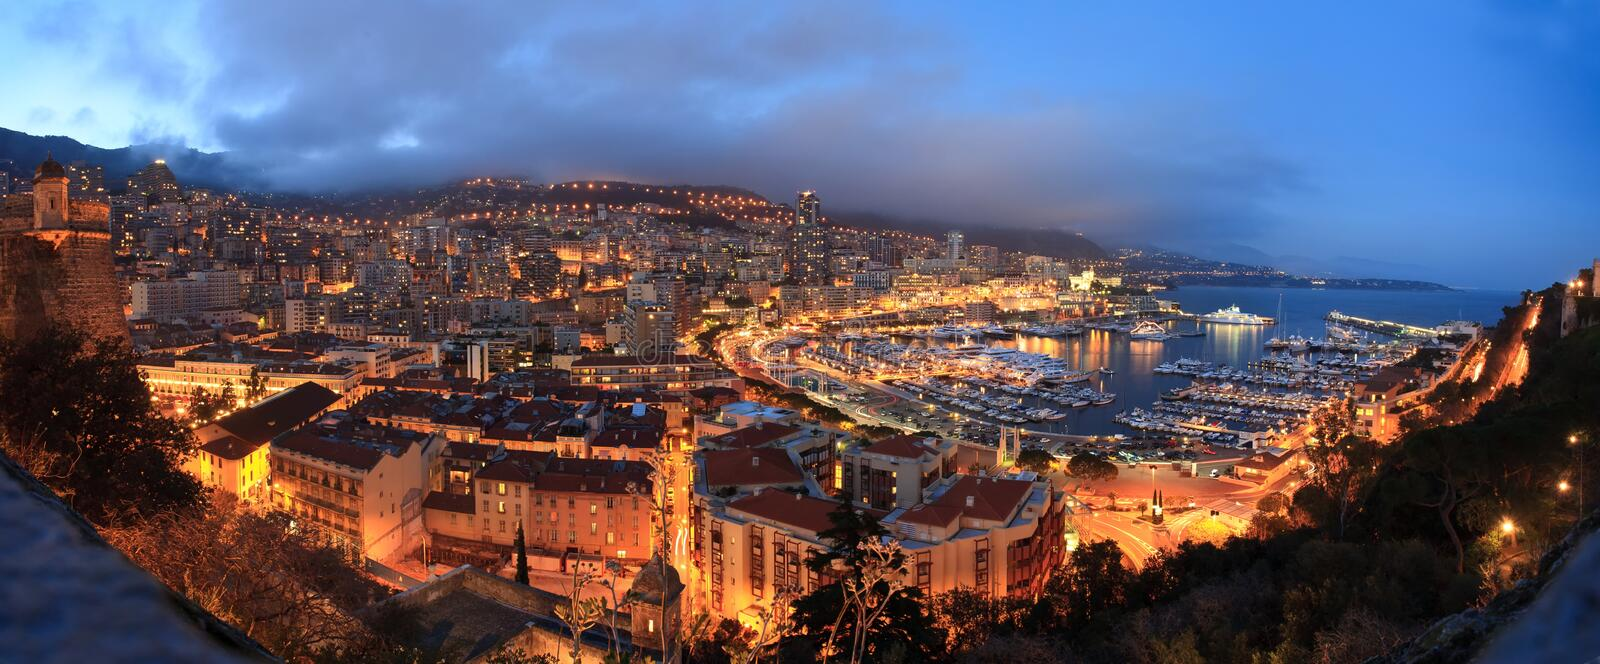 Panorama Monaco-.night lizenzfreies stockfoto